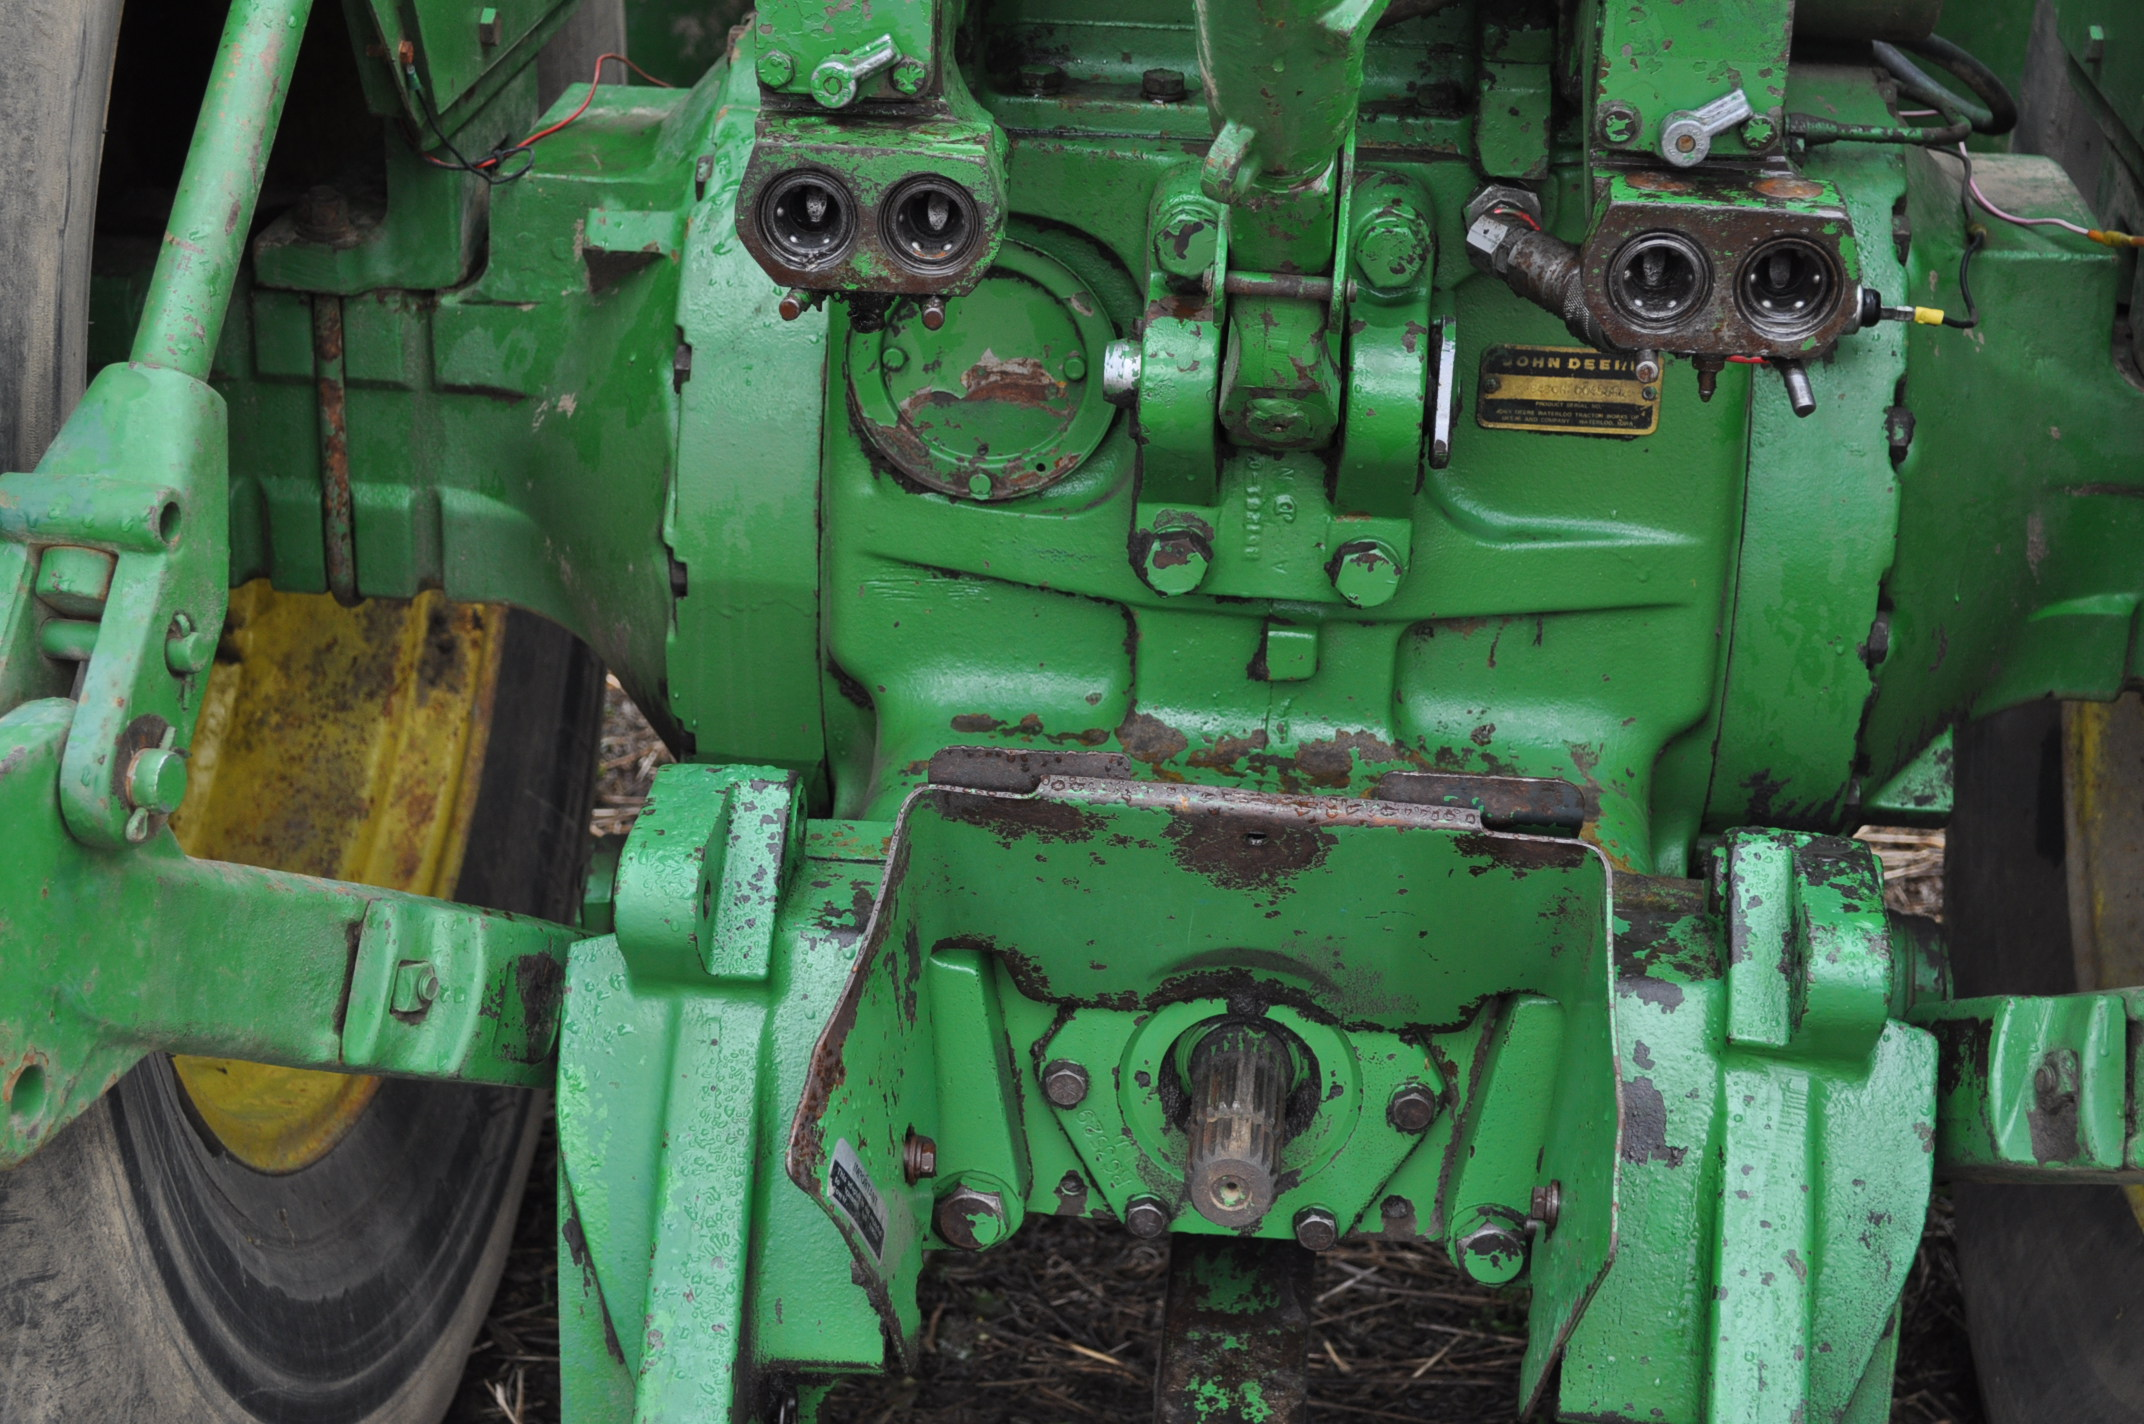 John Deere 8430 tractor, 4WD, diesel, 20.8-34 duals, CHA, Quad range, 3 hyd remotes, 1000 pto, 3 pt, - Image 12 of 19